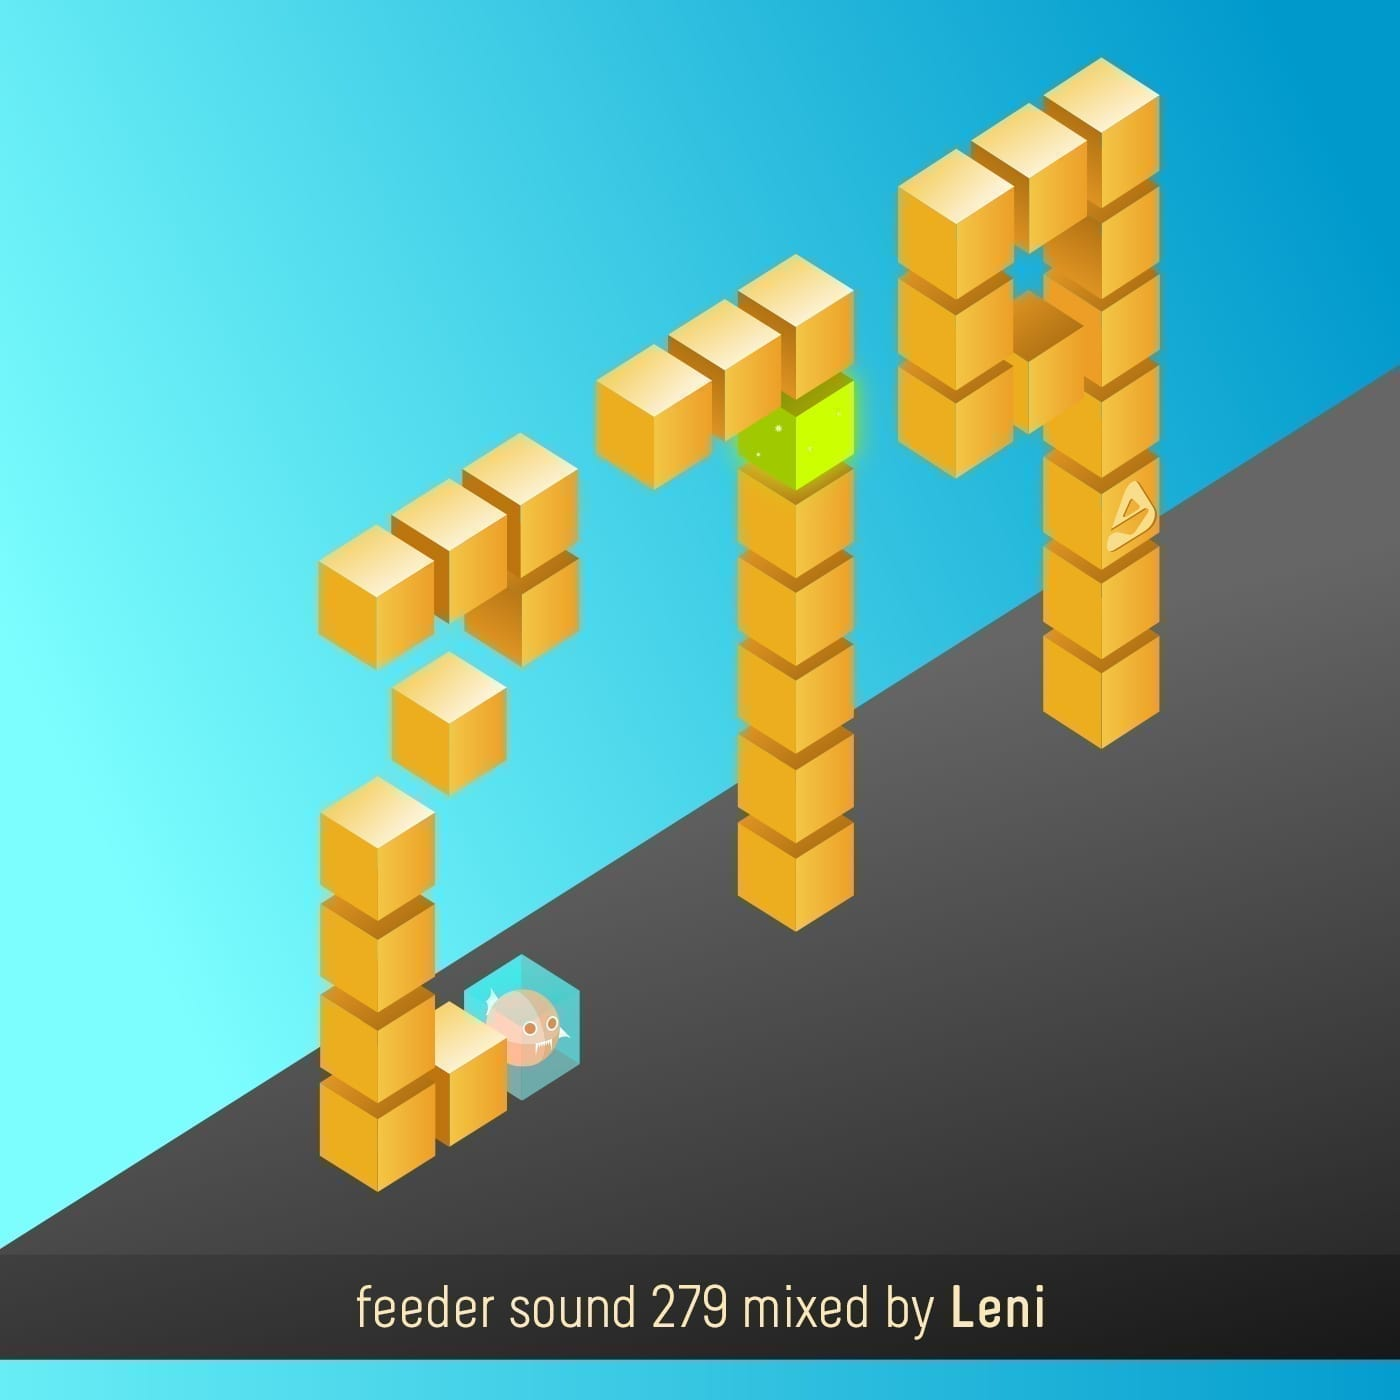 feeder sound 279 mixed by Leni 01